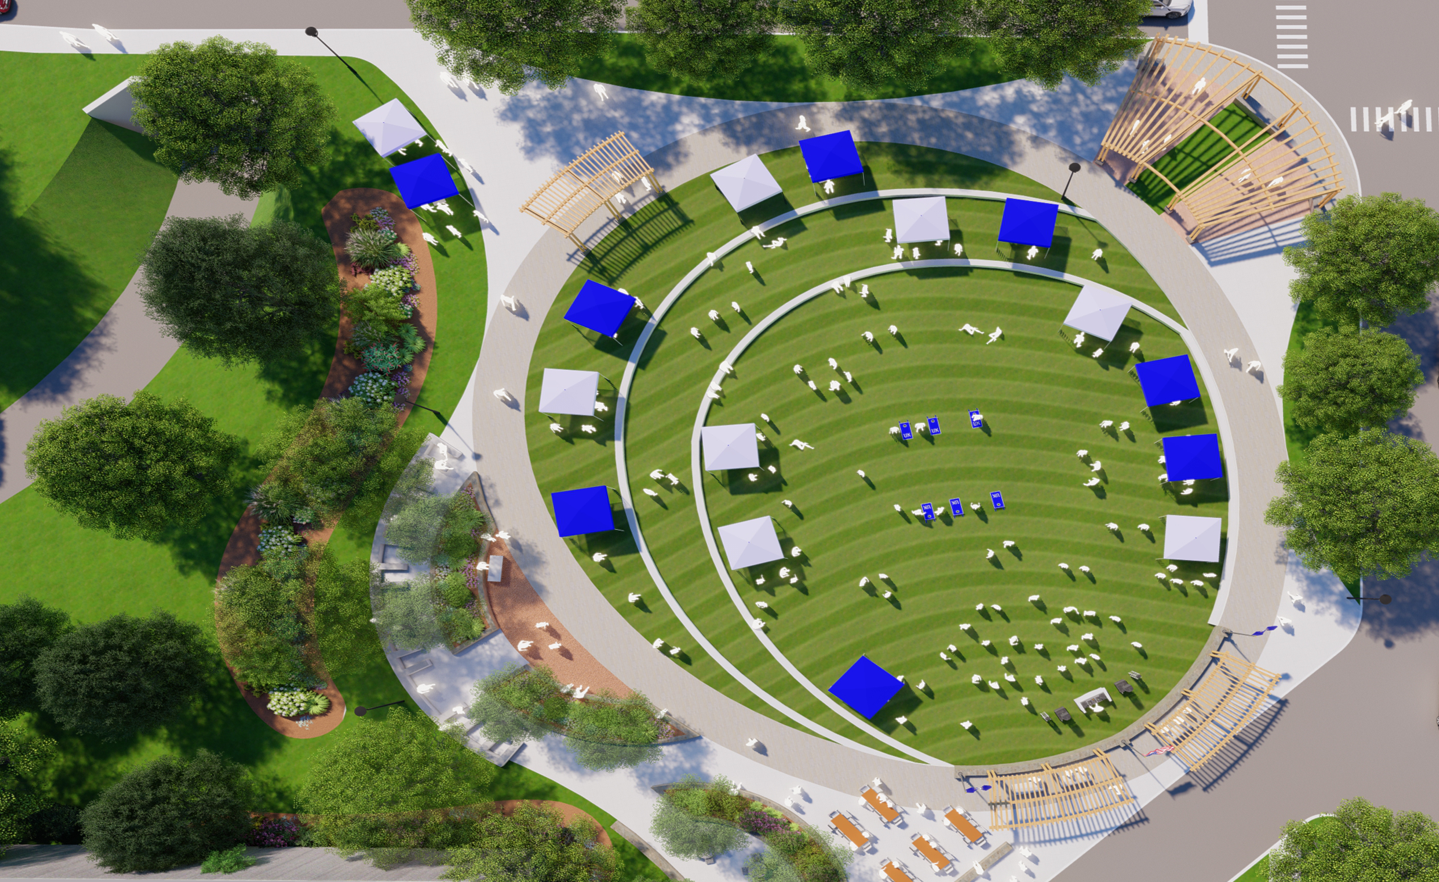 student rendering of green space with tents and people